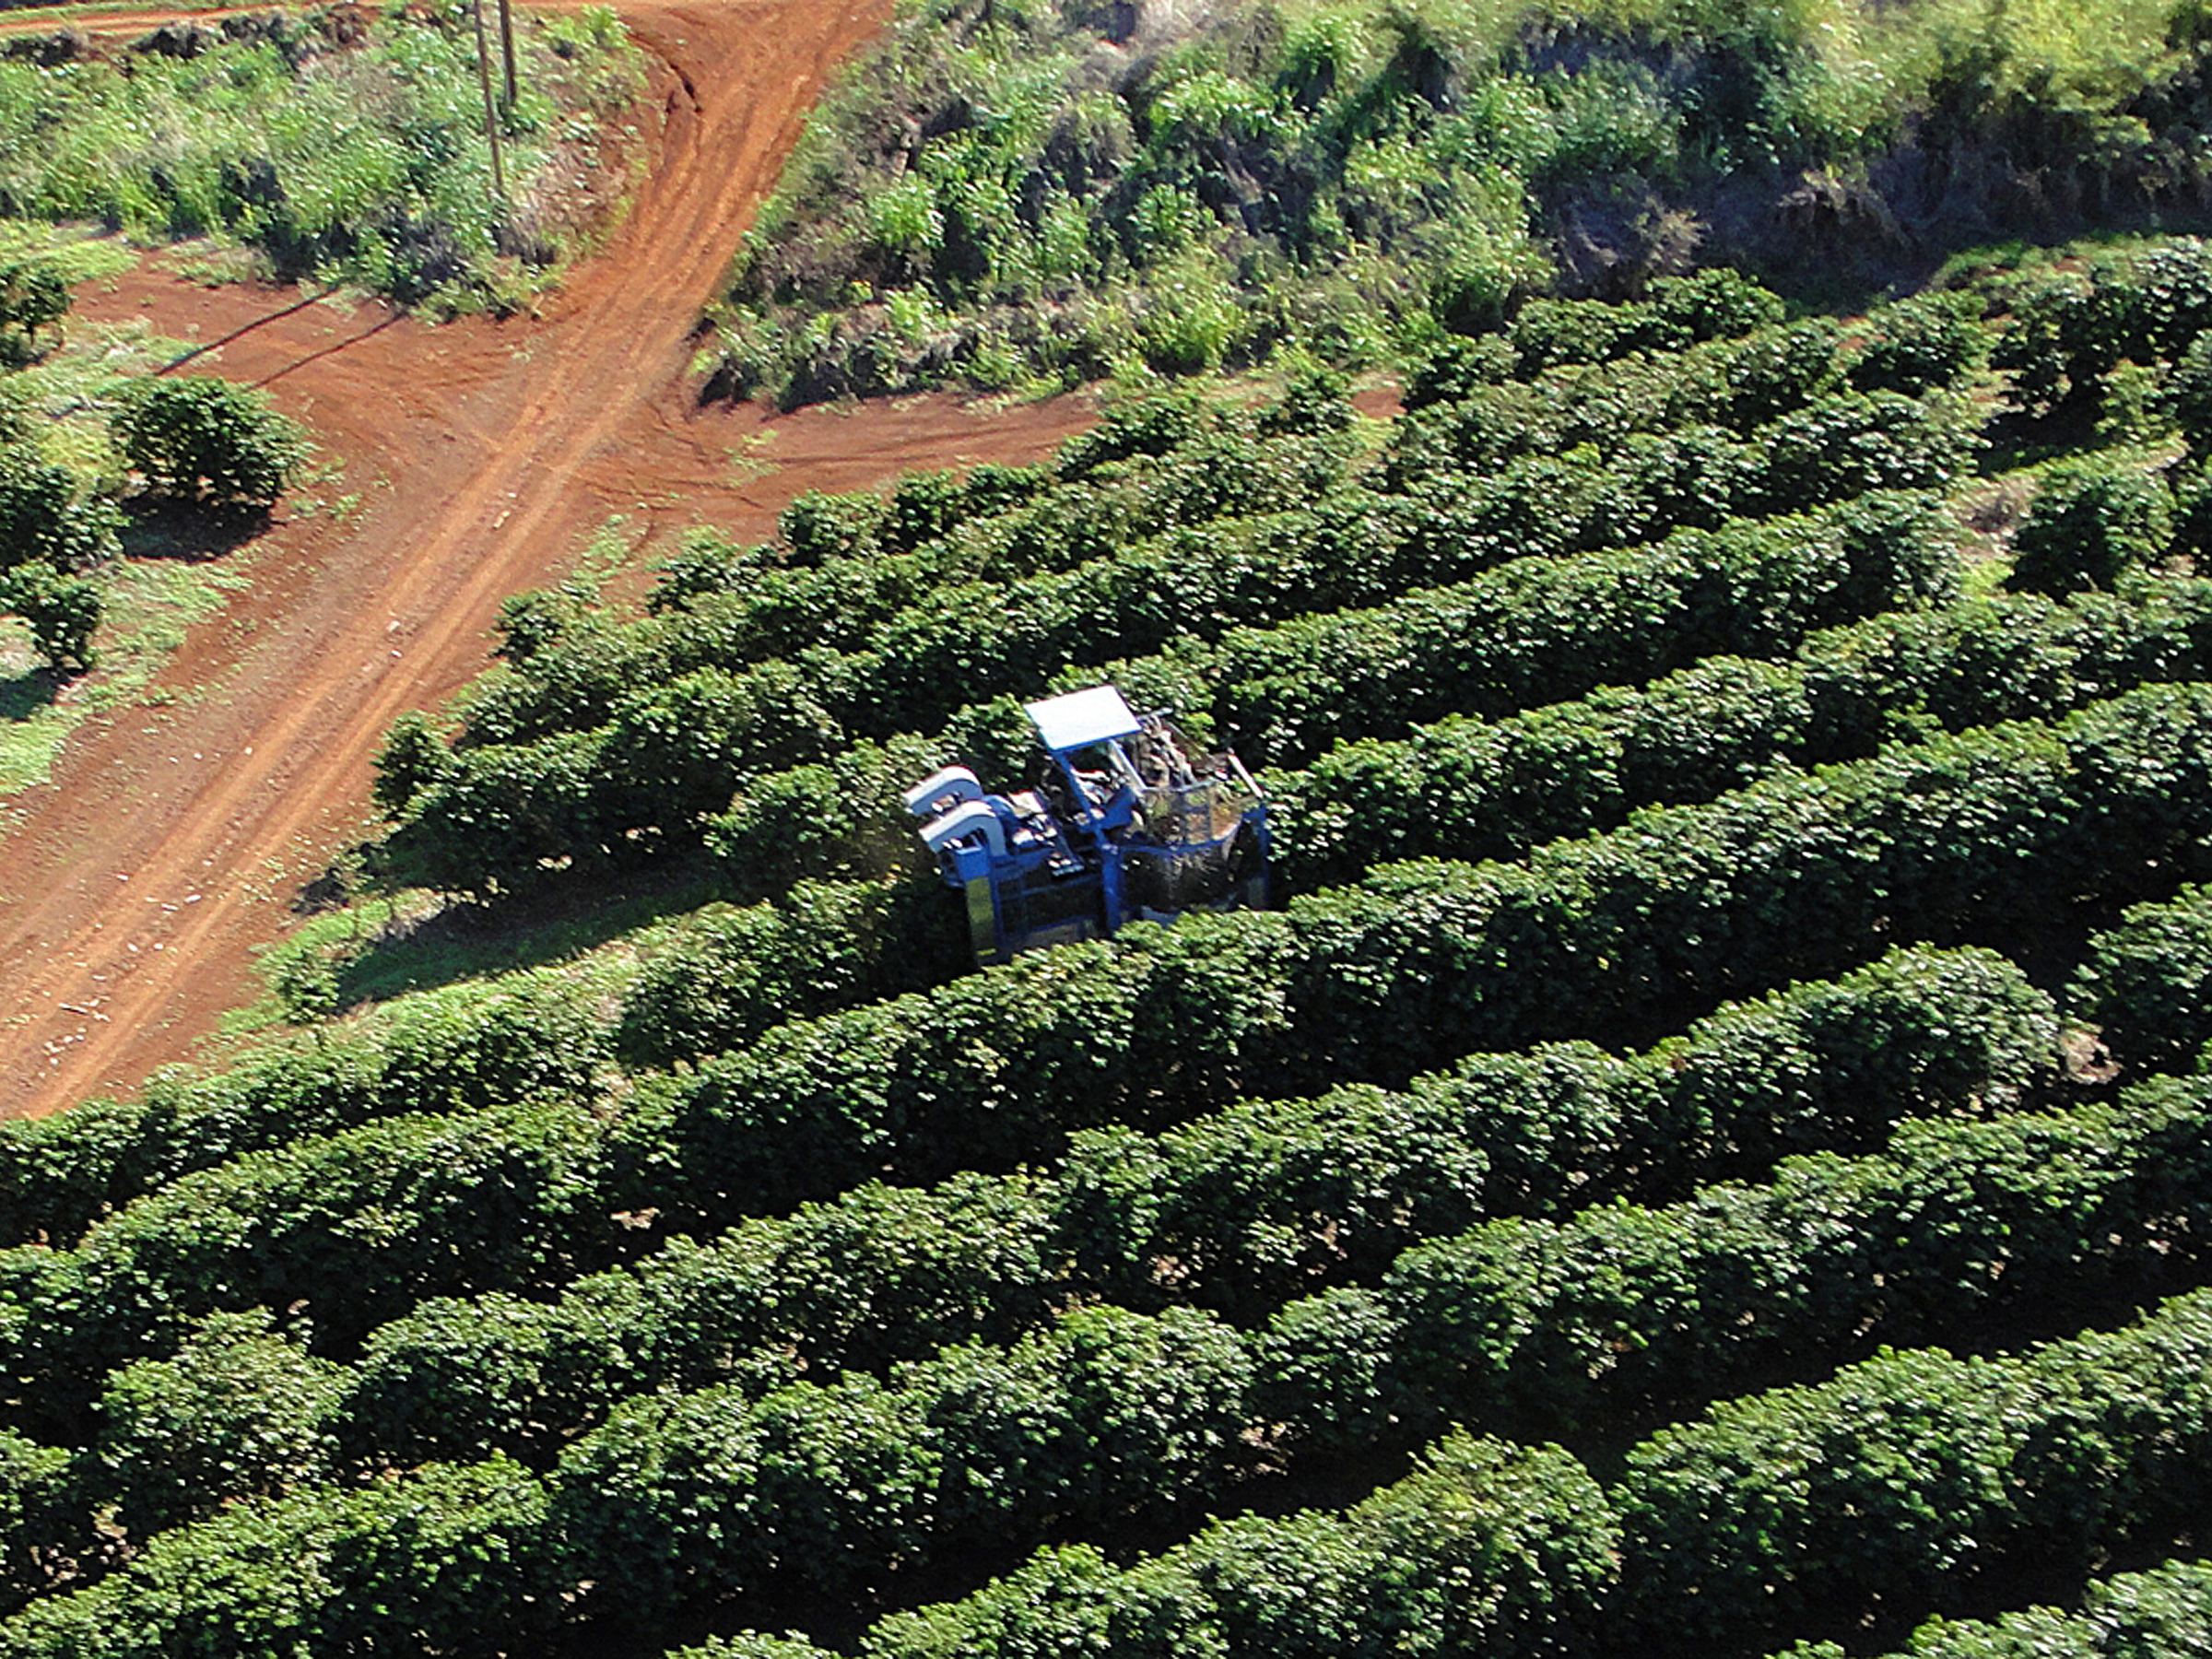 Crops are nurtured year-round in an ideal climate for growing outstanding coffee.